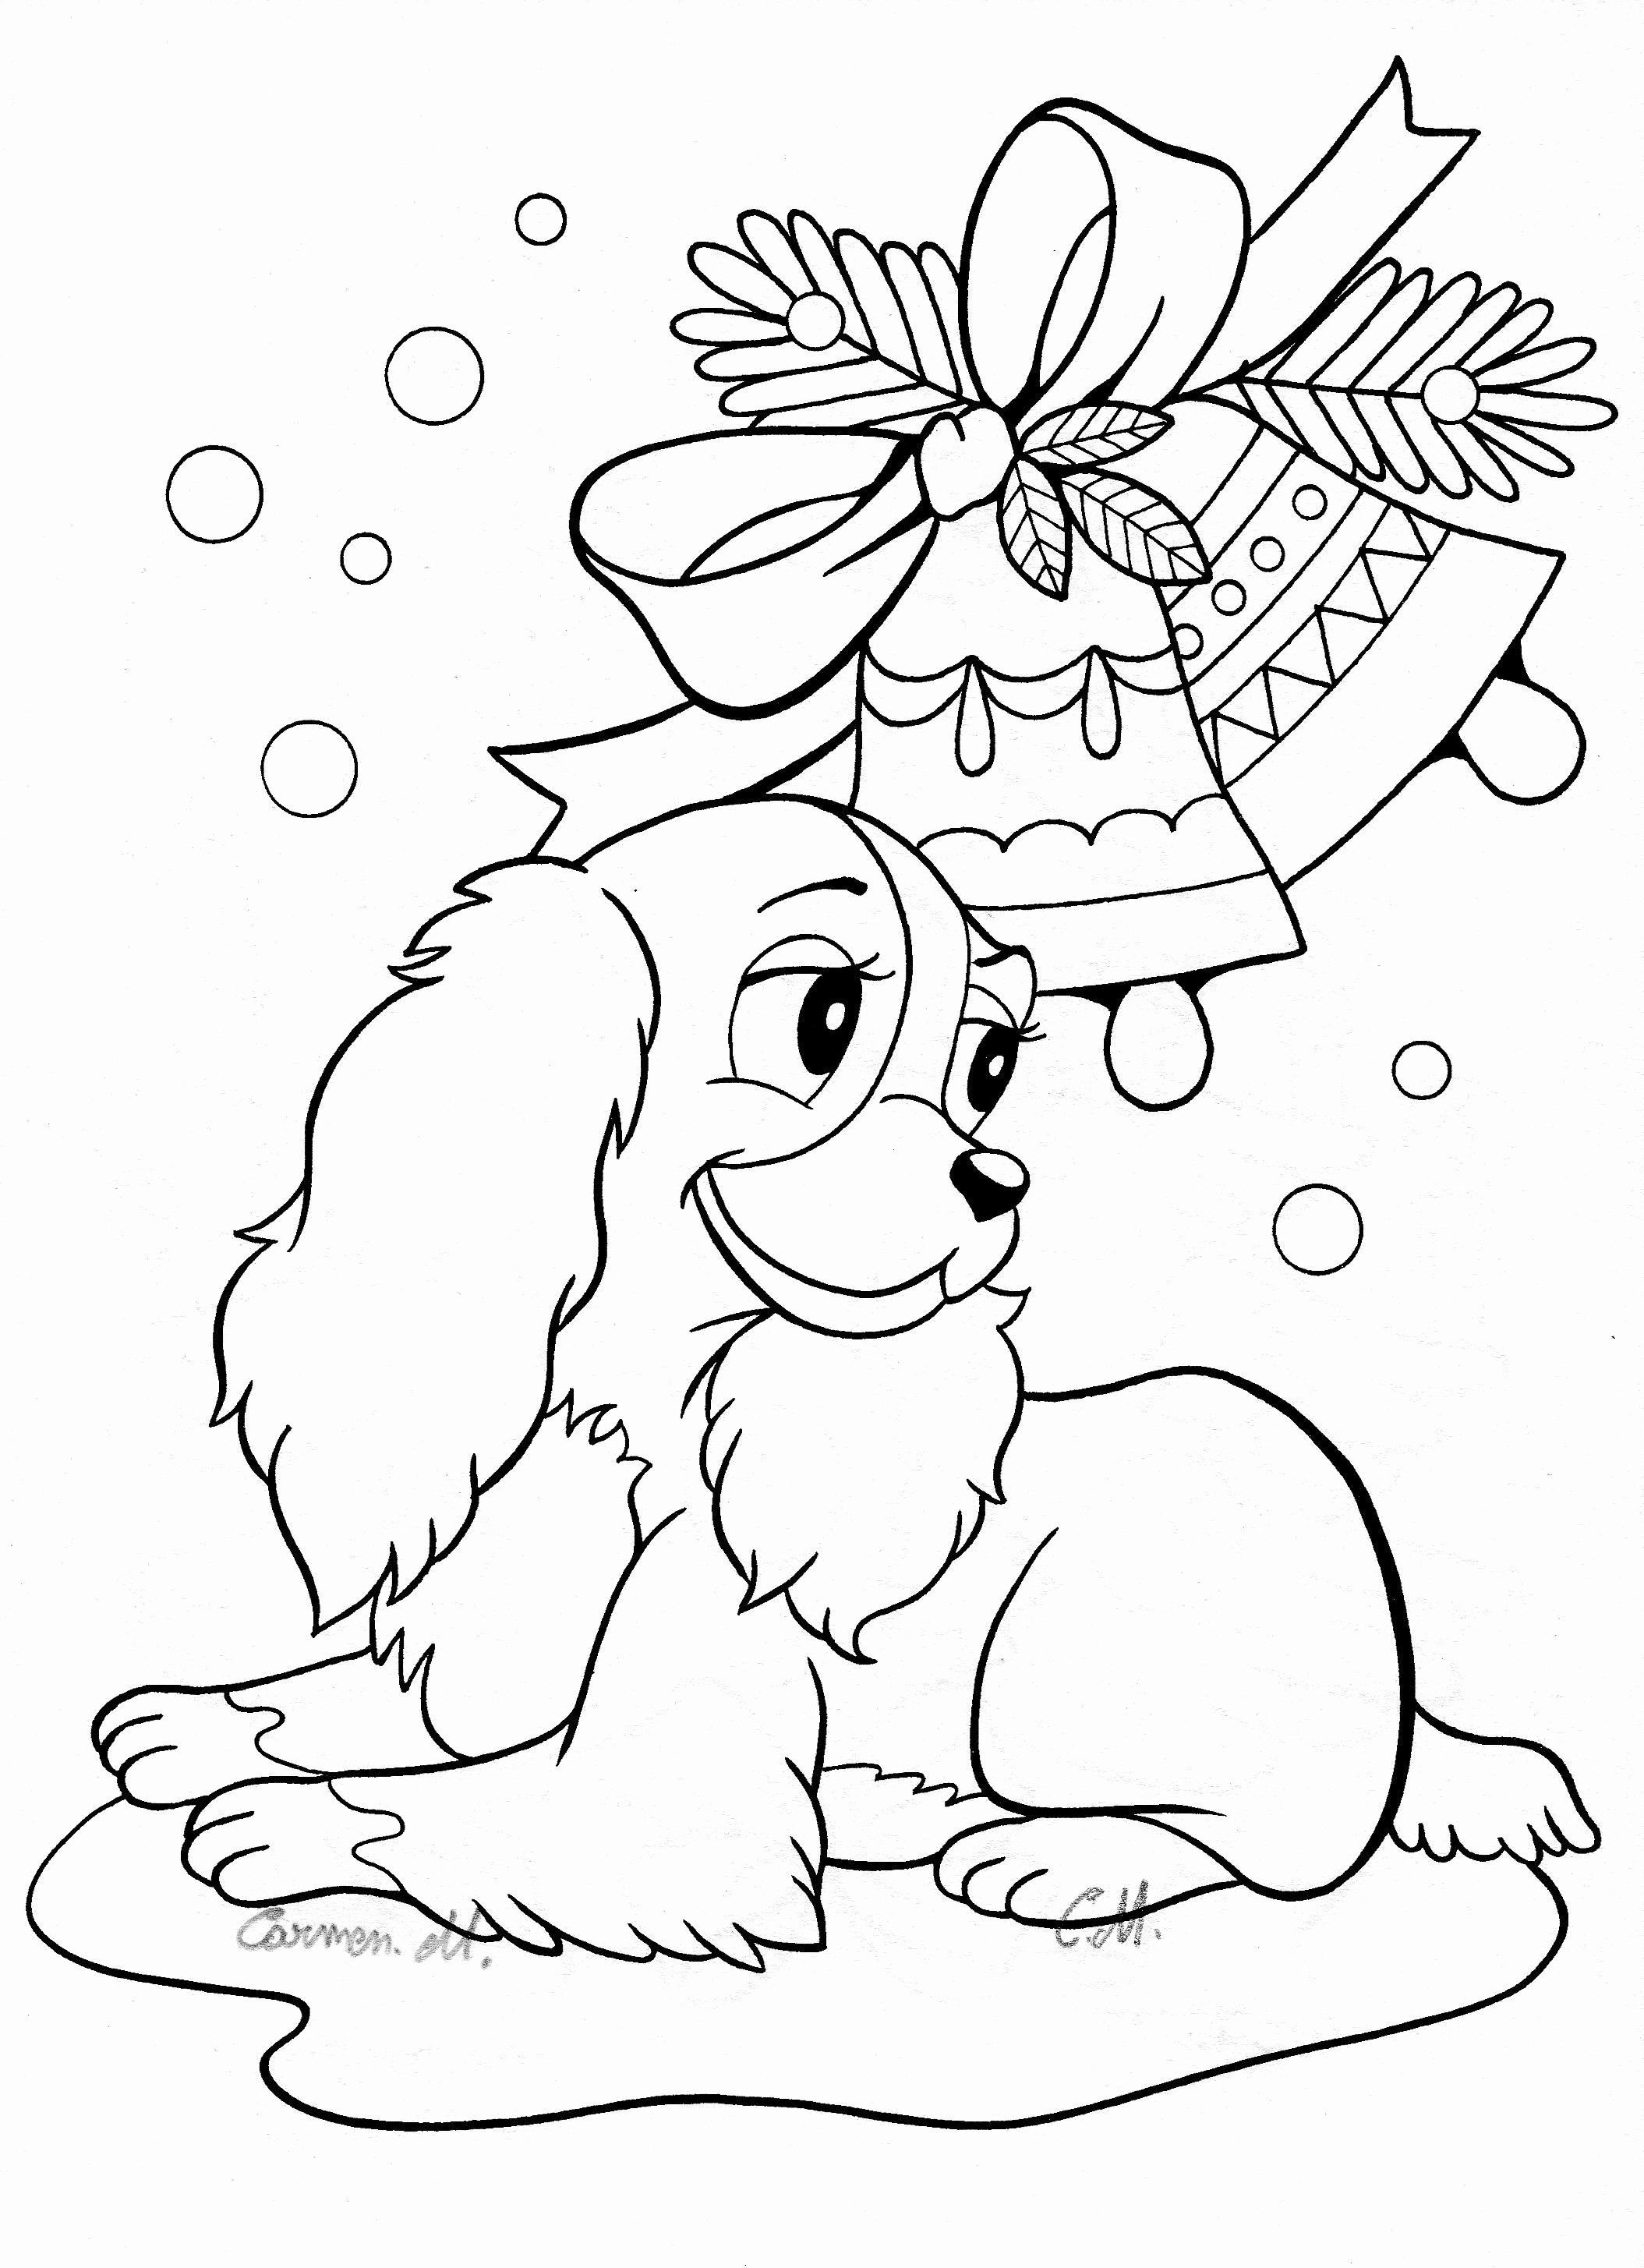 Super Cute Coloring Pages Best Of Coloring Hard Colouring Pages For Kids Free P Printable Christmas Coloring Pages Mermaid Coloring Pages Disney Coloring Pages